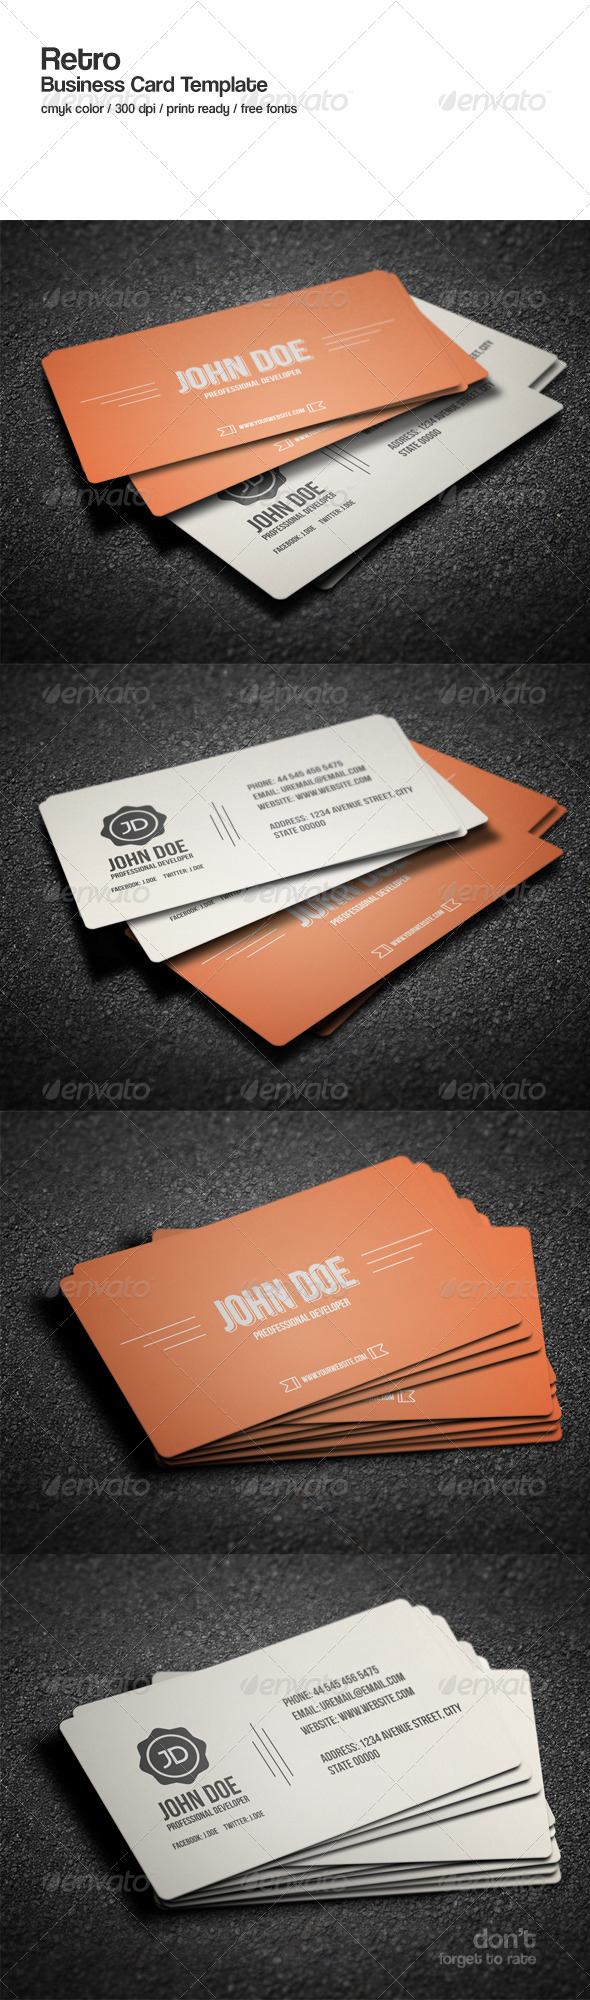 GraphicRiver Retro Business Card Template 8606370